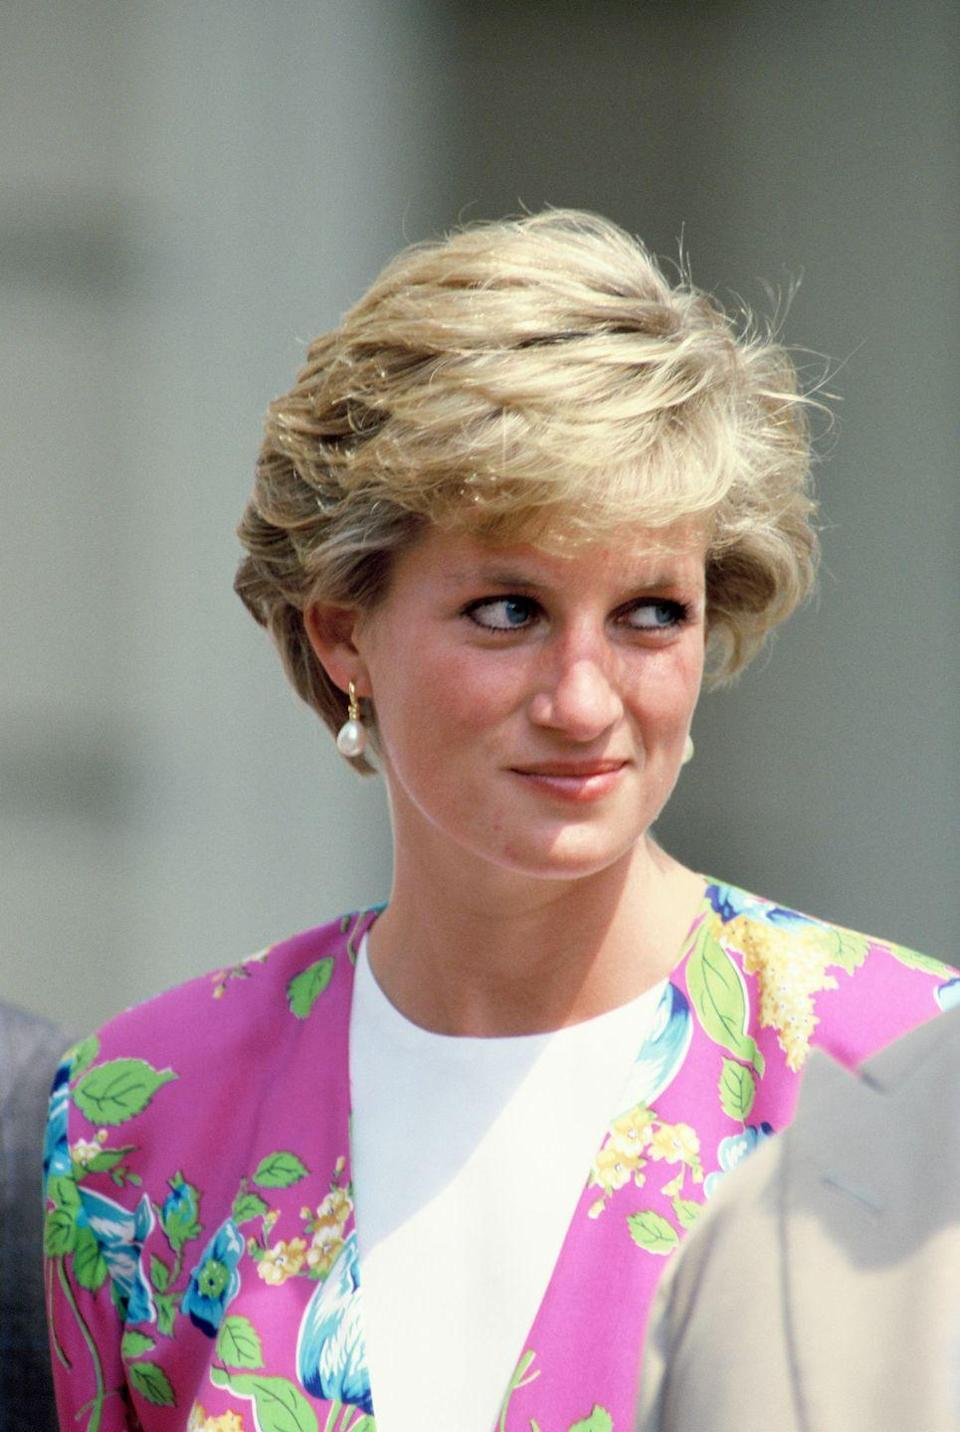 """<p>Ever the trendsetter, Princess Diana influenced women of the world to go short with her famous crop created by <a href=""""http://www.harpersbazaar.com/beauty/hair/news/a13447/princess-diana-haircut-sam-mcknight/"""" rel=""""nofollow noopener"""" target=""""_blank"""" data-ylk=""""slk:hairstylist Sam McKnight"""" class=""""link rapid-noclick-resp"""">hairstylist Sam McKnight</a>.</p>"""